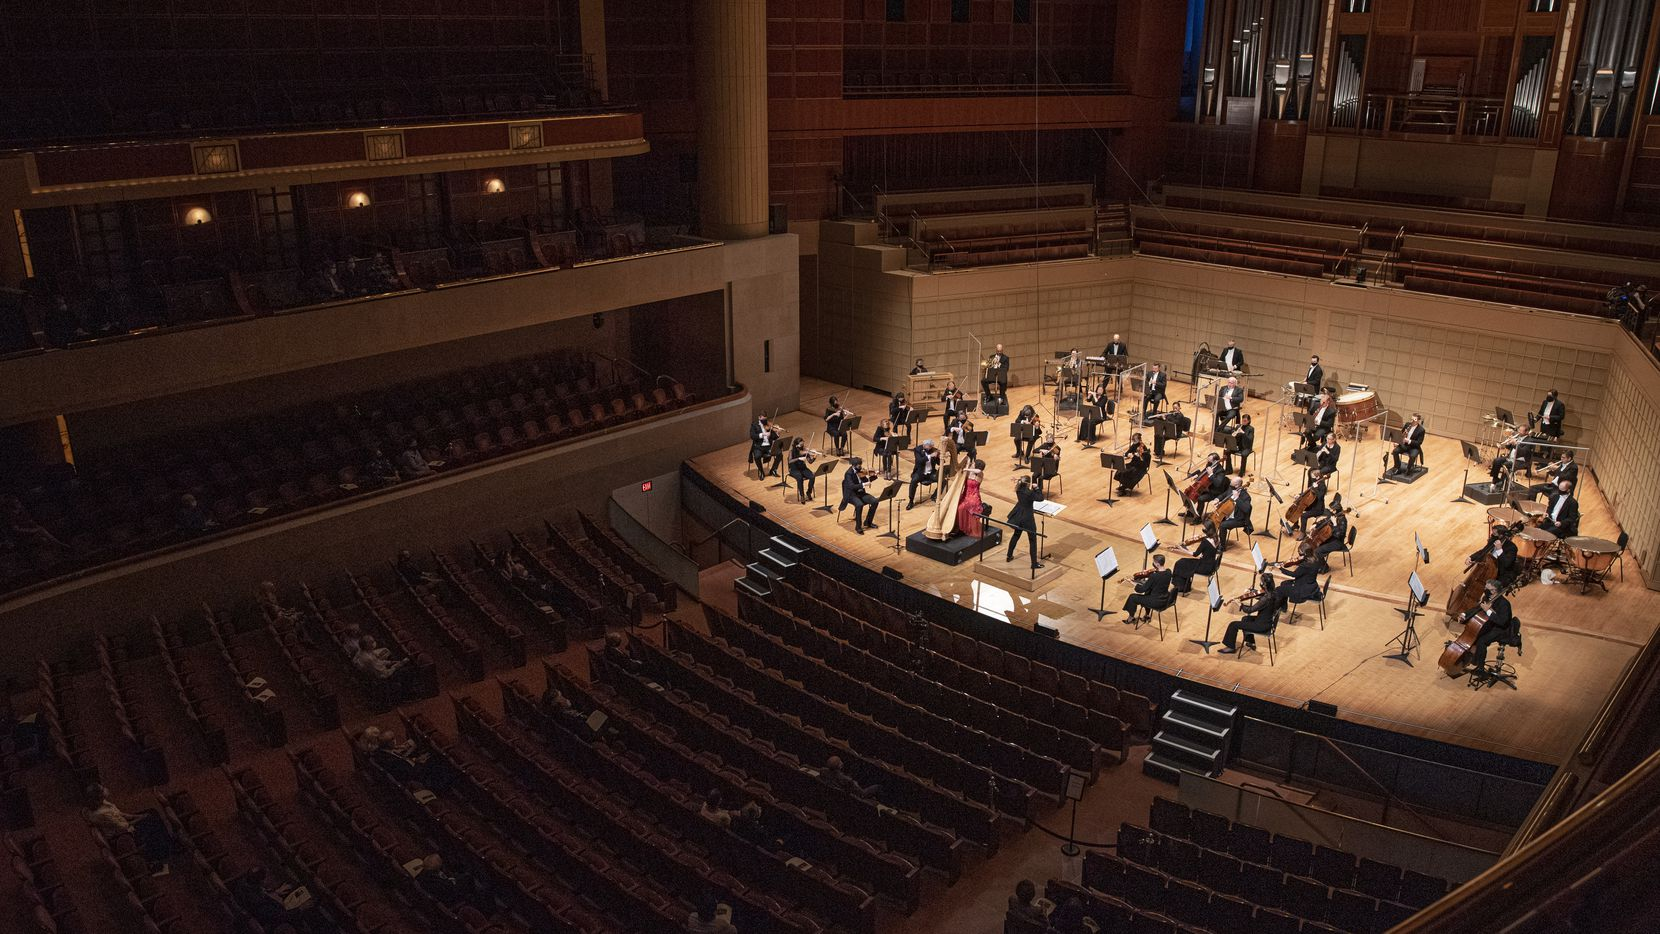 A crowd of under 100 DSO subscribers, listen to harpist Emily Levin and Conductor Gemma New as they perform Harp Concerto by Ginastera with the Dallas Symphony Orchestra at the Morton H. Meyerson Symphony Center in downtown Dallas this September. If the students of four award-winning Allen ISD orchestras keep it up, they may get a spot on this stage some day. Ben Torres/Special Contributor